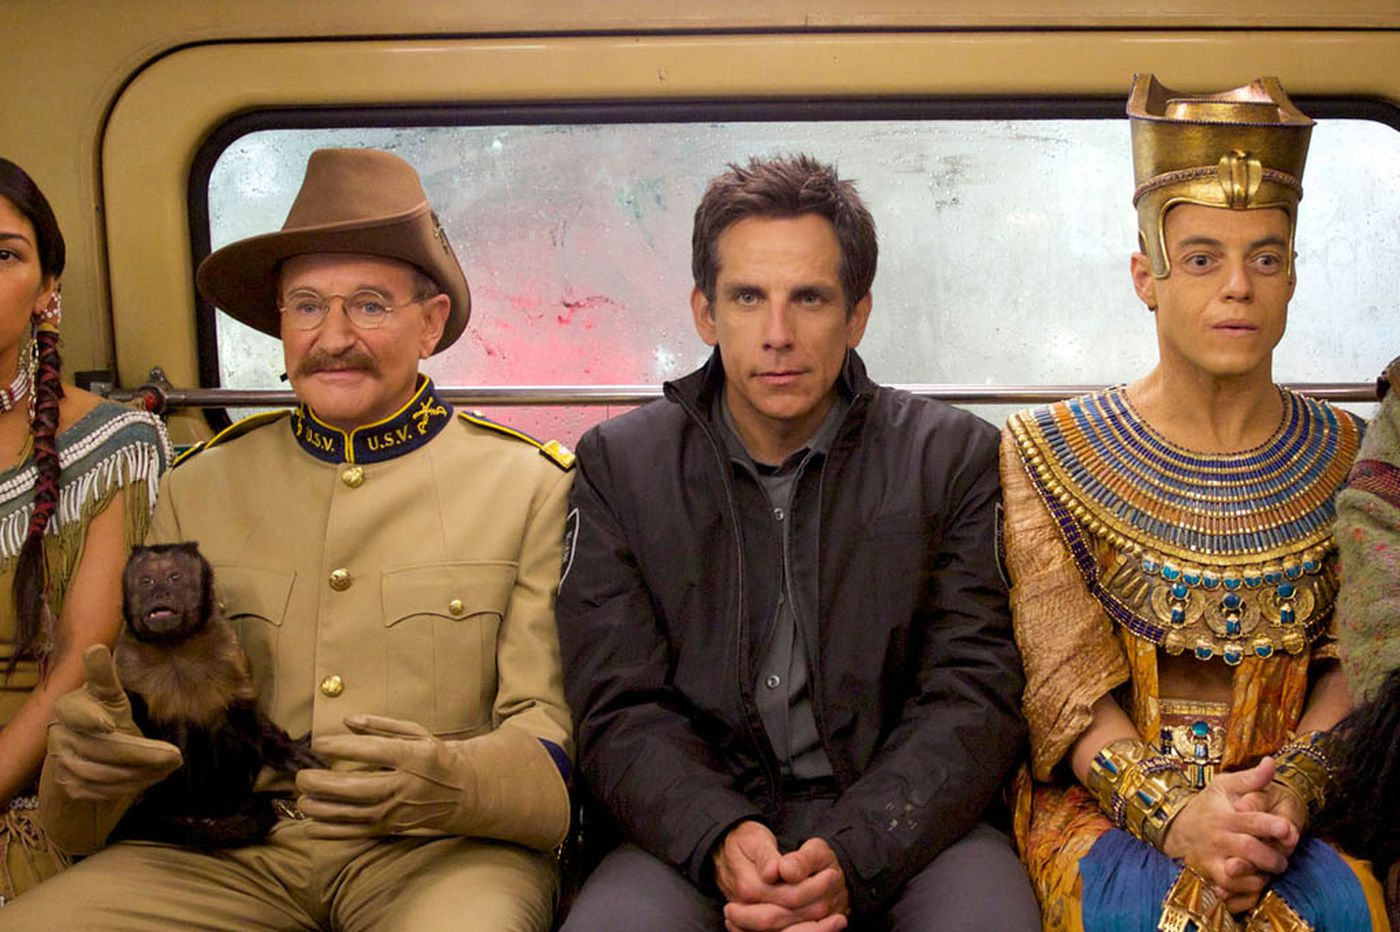 'Night at the Museum' trilogy wraps with 'Secret'